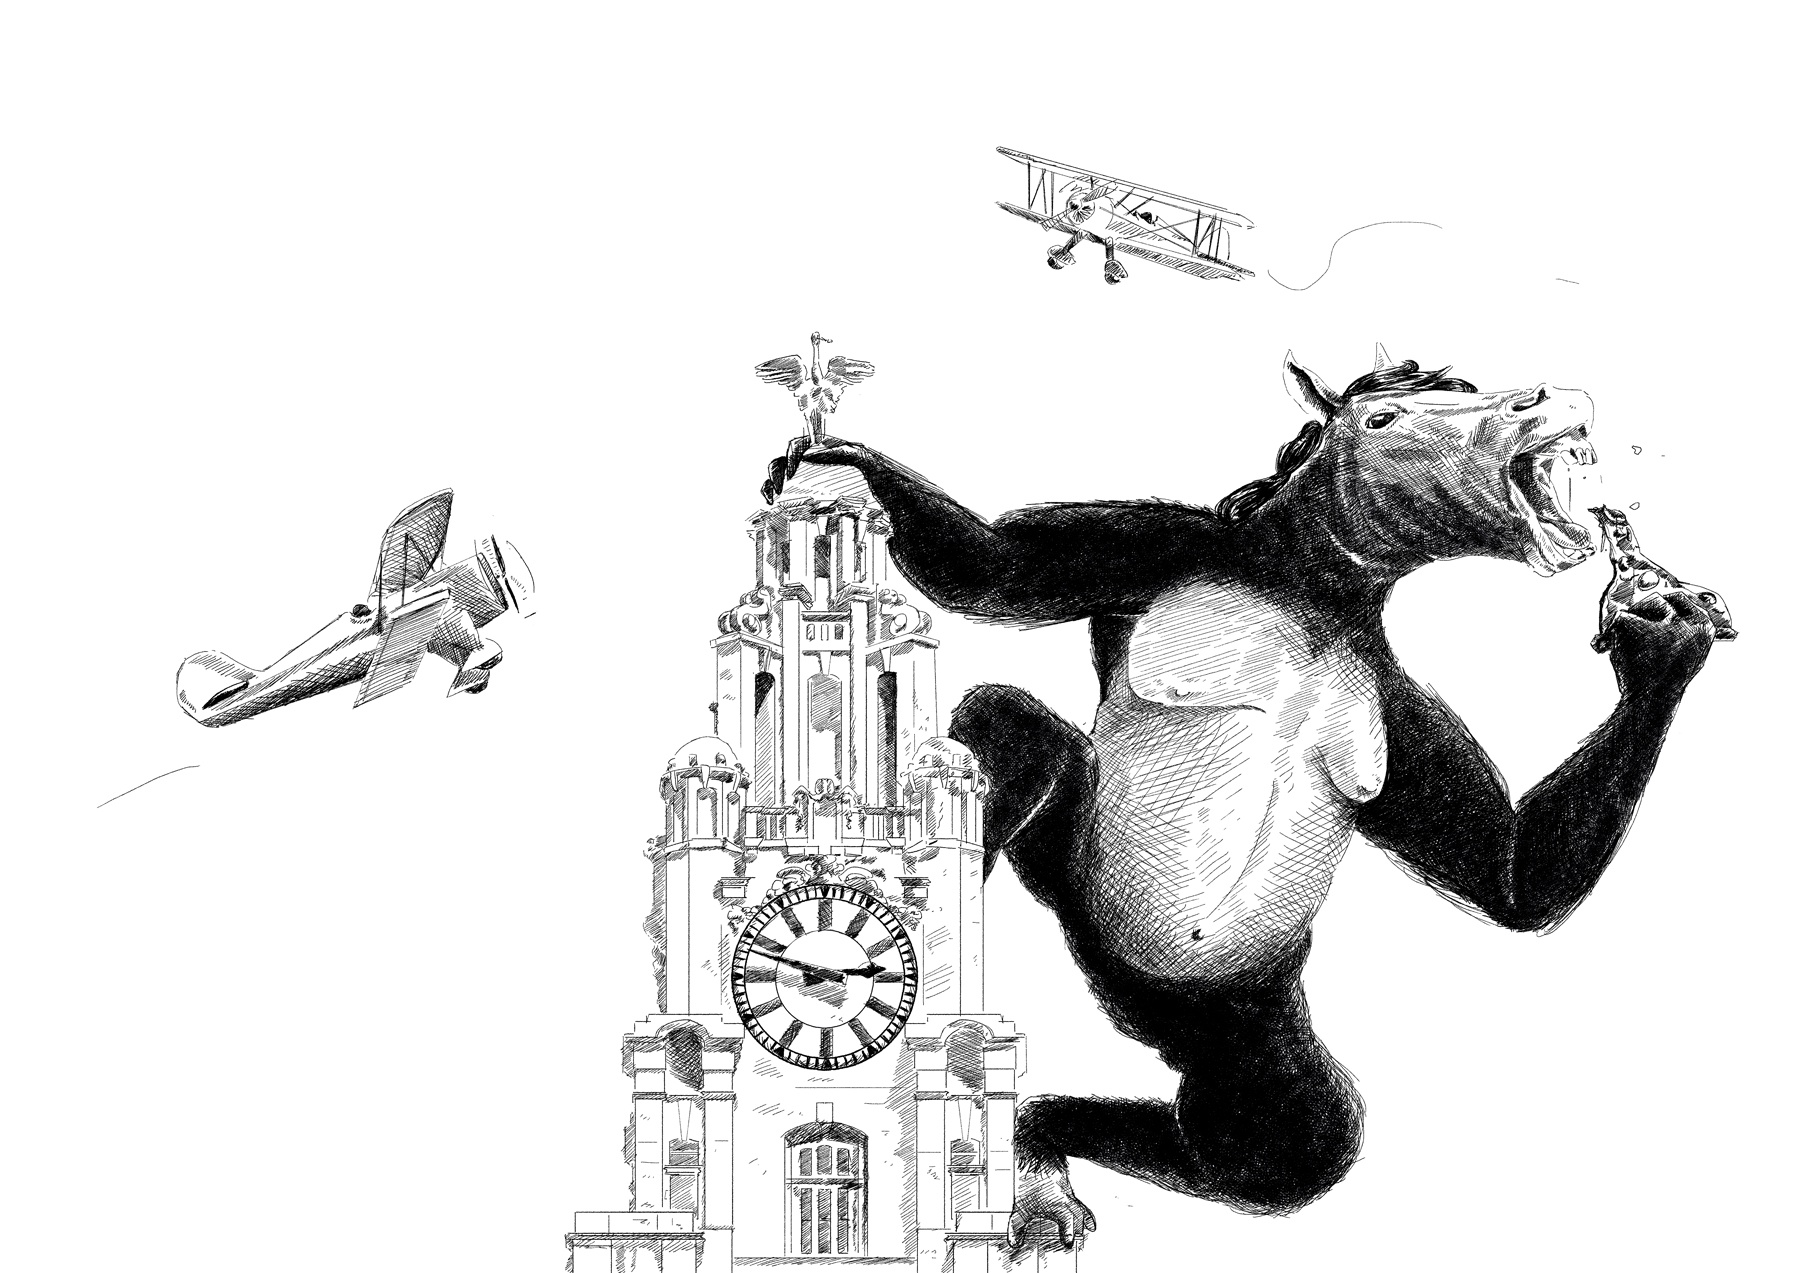 King Kong illustration the Liver building